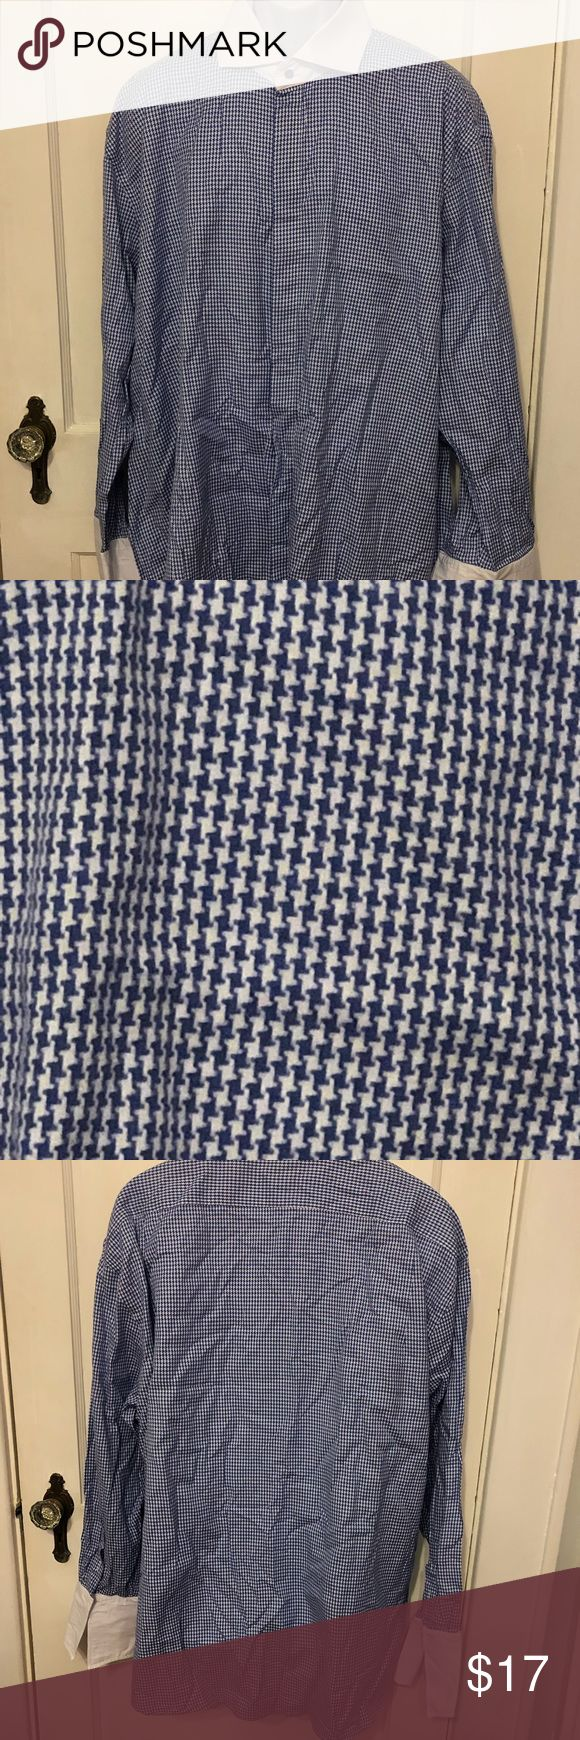 """Steven Land dress shirt French cuffs 18.5 34/35 This is a Steven Land dress shirt.  French cuffs.  100% cotton.  80's 2 ply fabric.  Size 18.5 34/35.  Measures 31"""" armpit to armpit and 33"""" shoulder to hem.  It's in great condition. No rips, stains or tears. Steven Land Shirts Dress Shirts"""